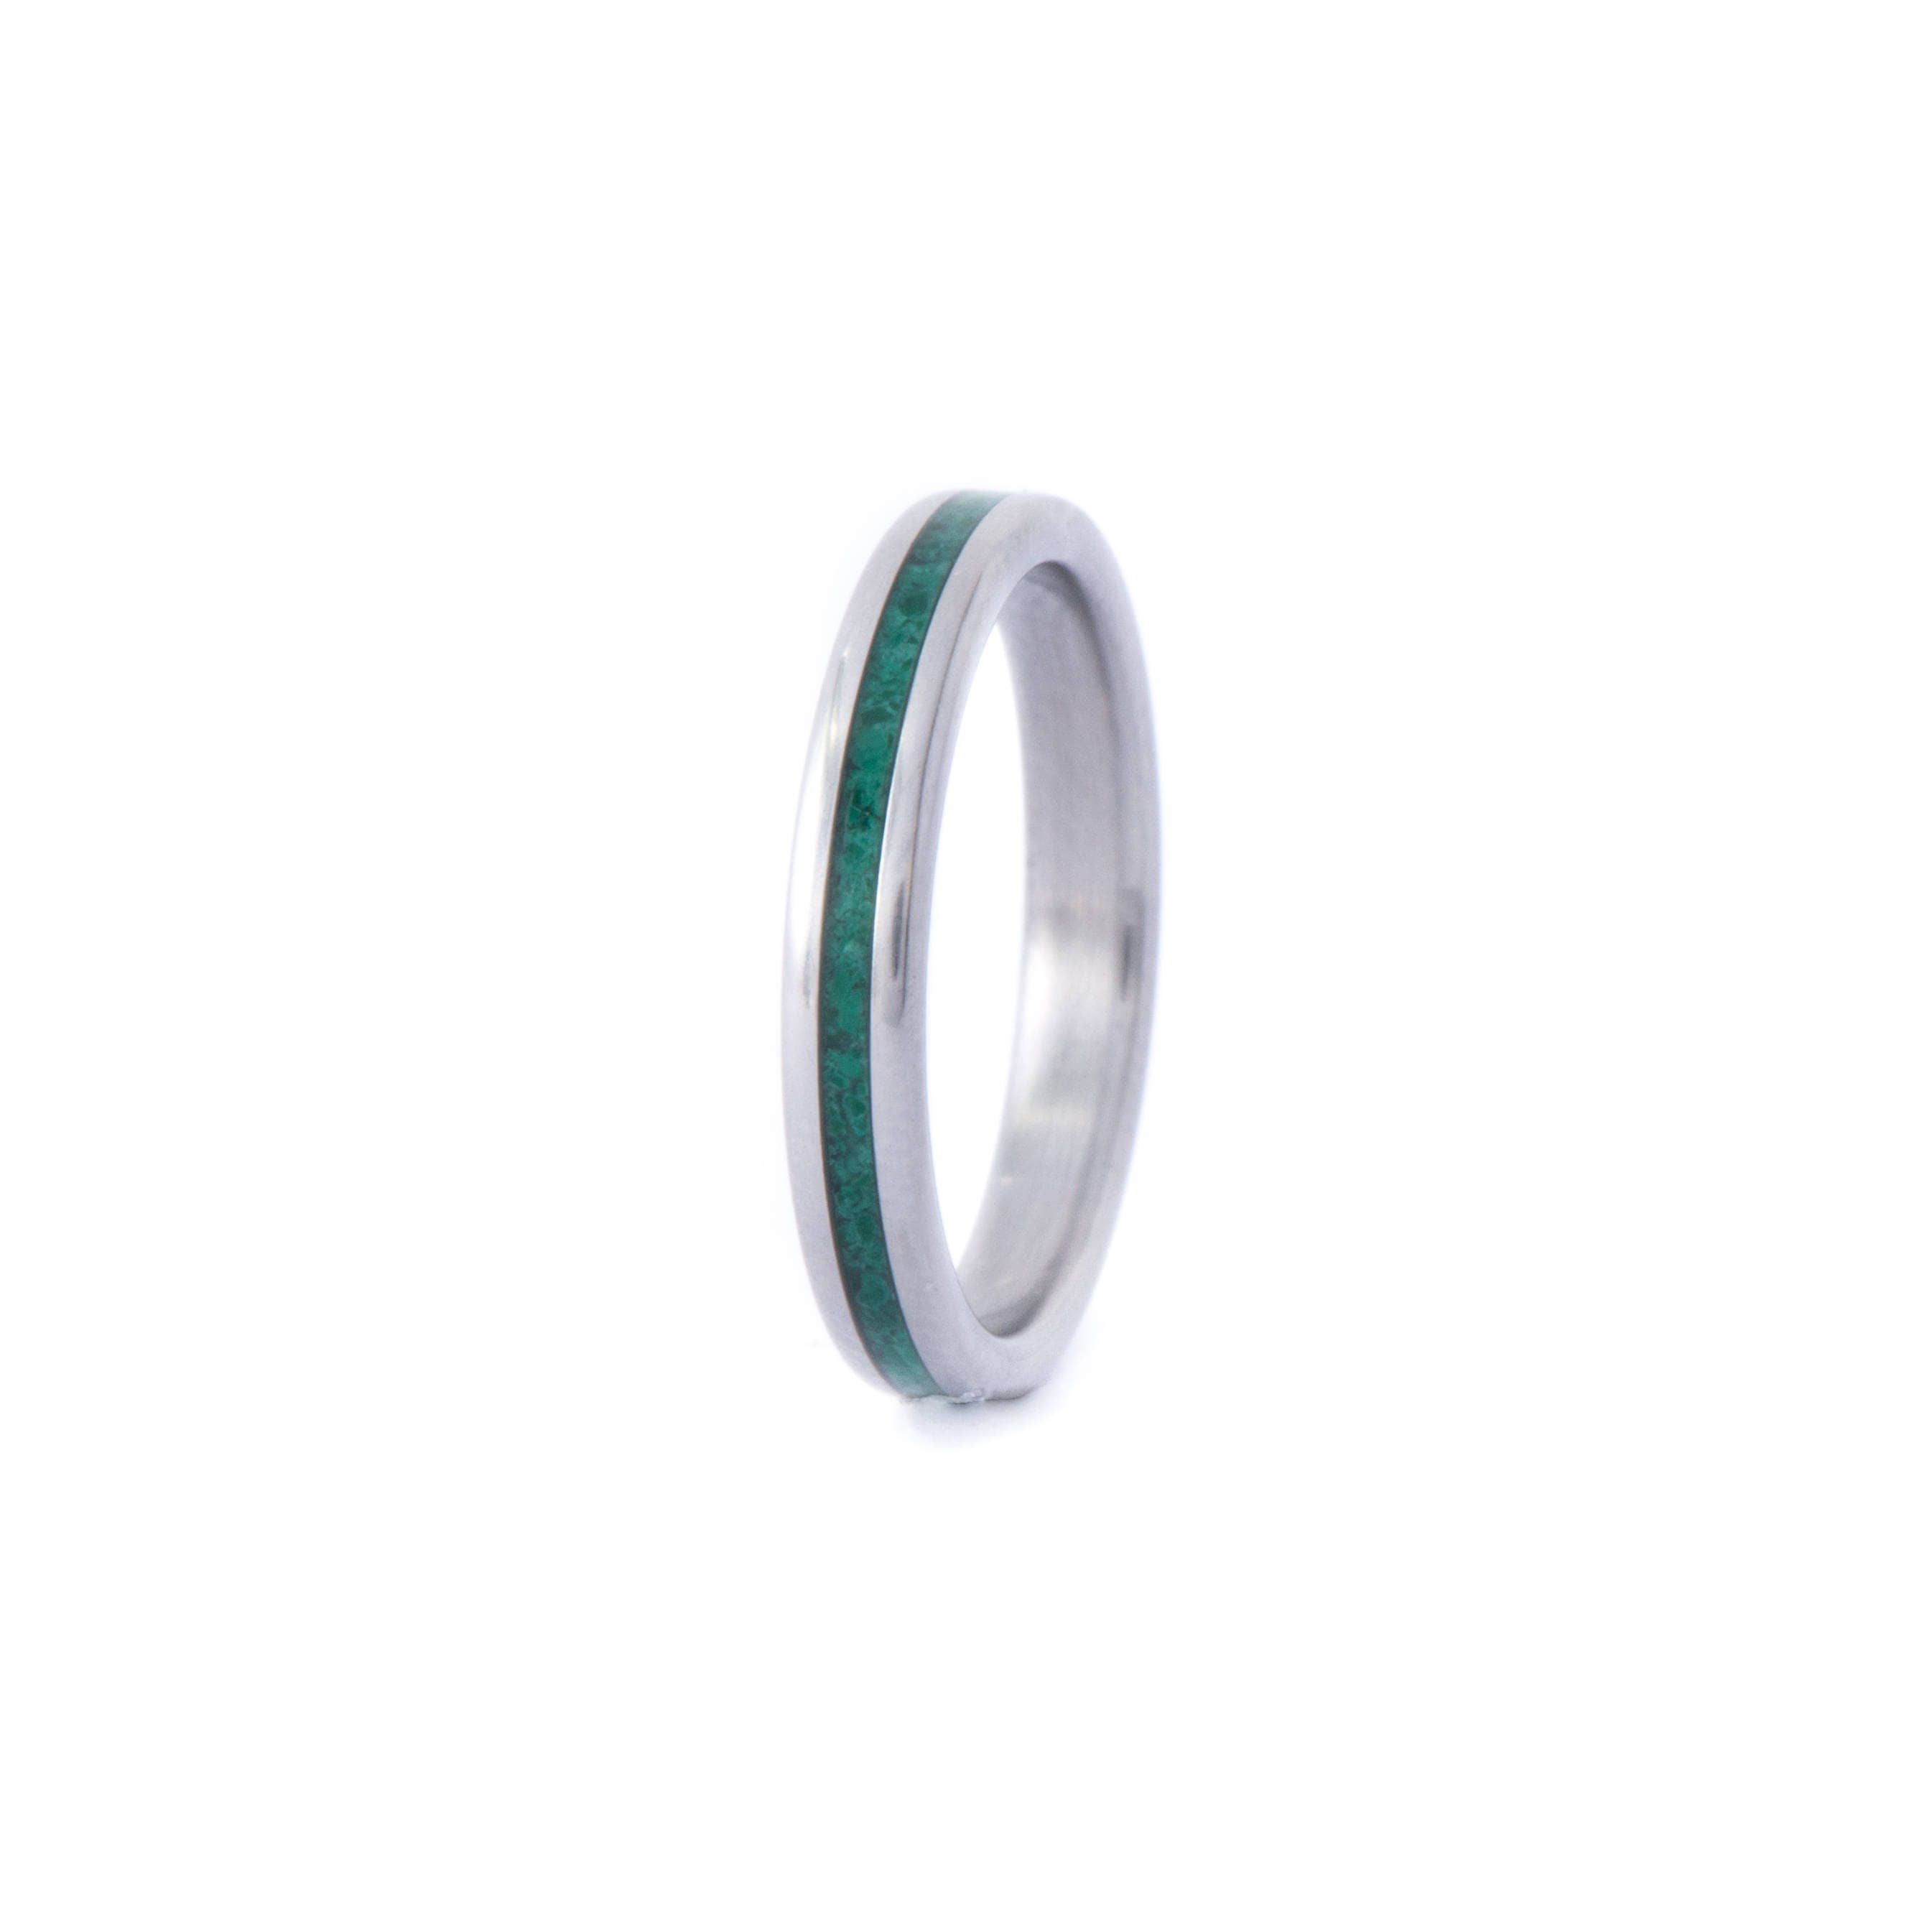 3mm Wide Titanium Ring With Malachite Mineral Stone Inlay. Wedding And Engagement Ring. For Men And Women. Custom Made.